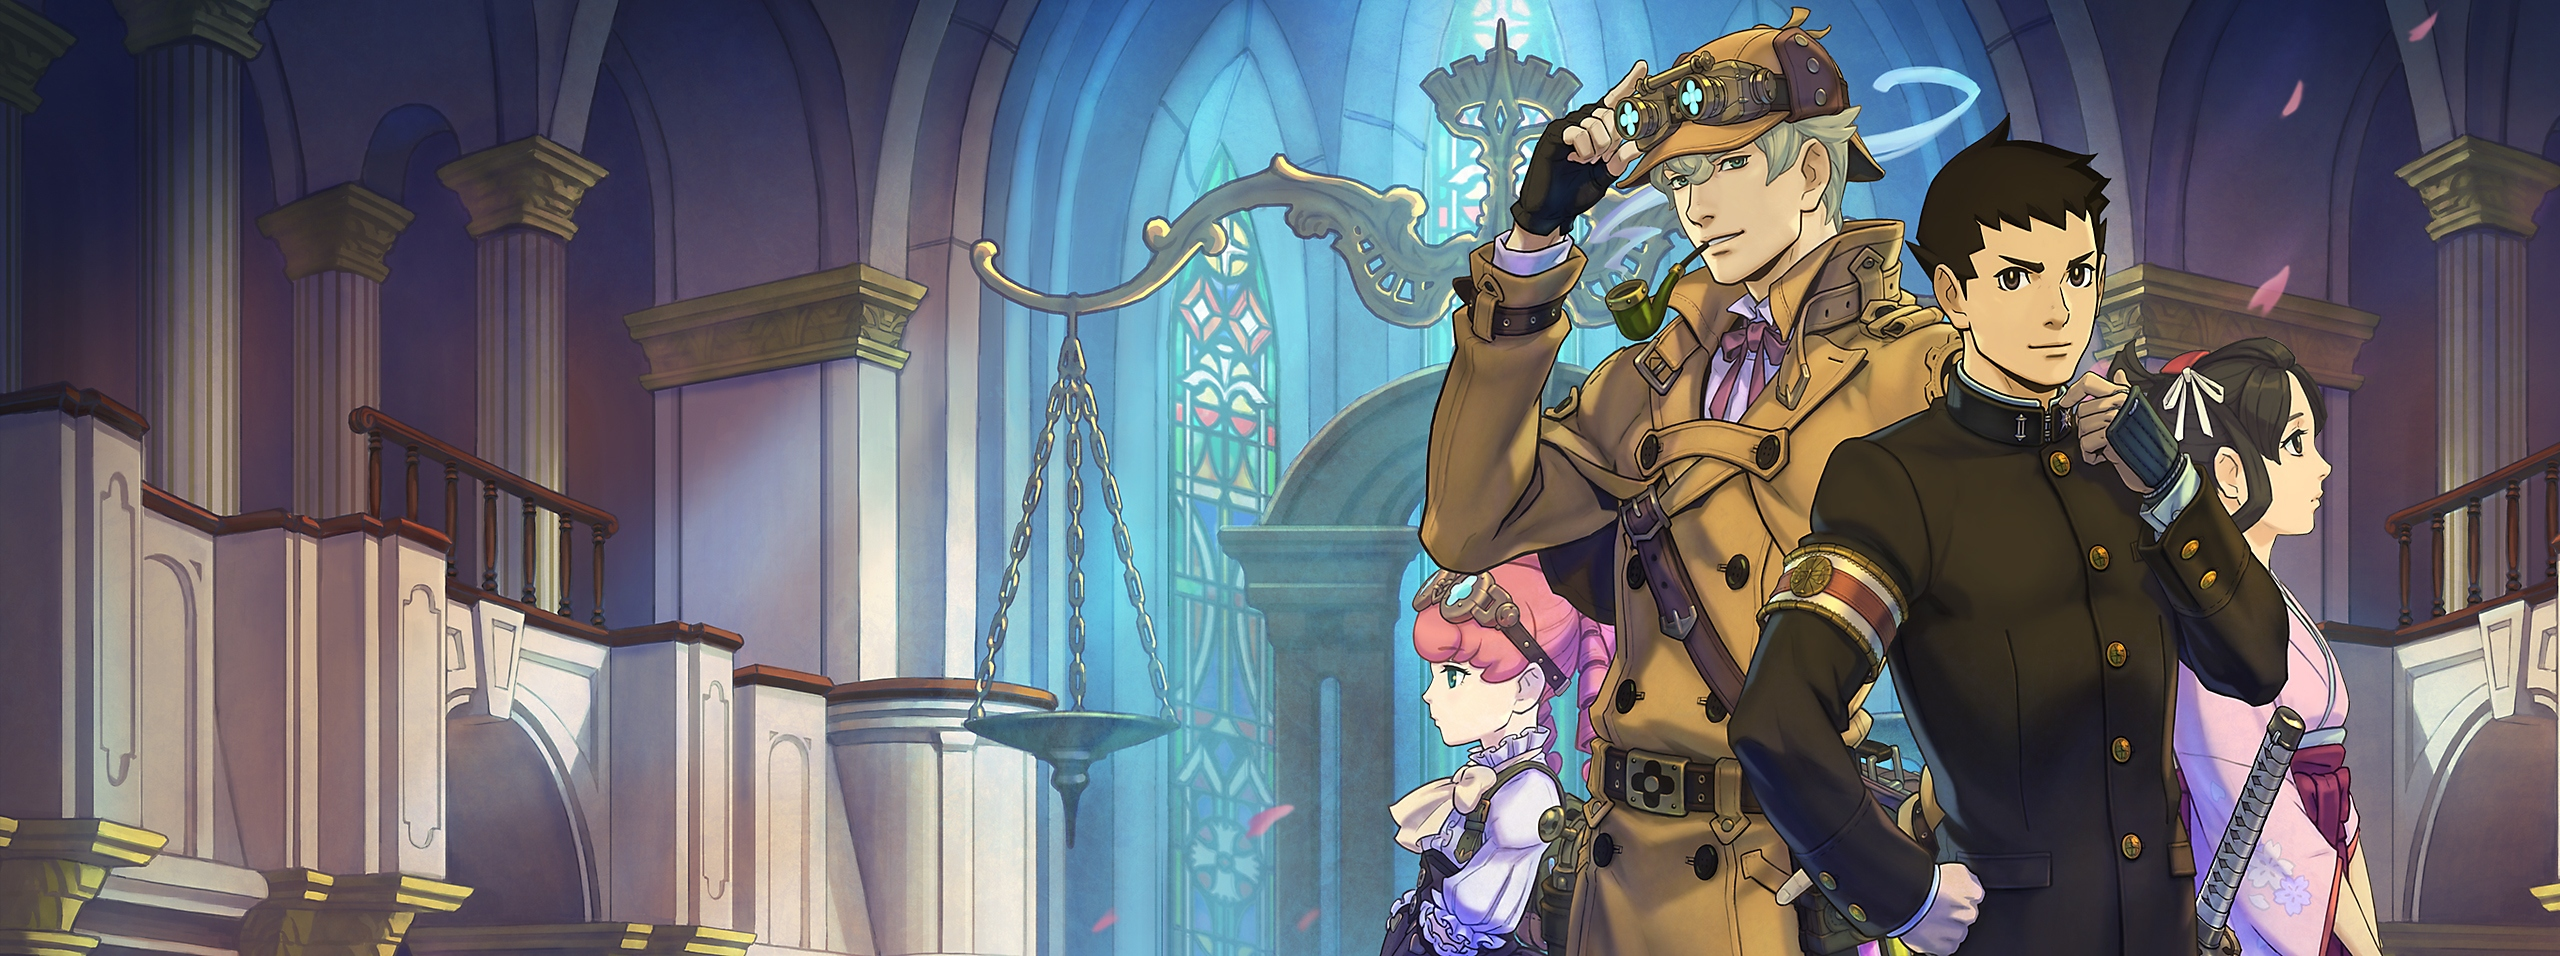 The Great Ace Attorney Chronicles - Key Art